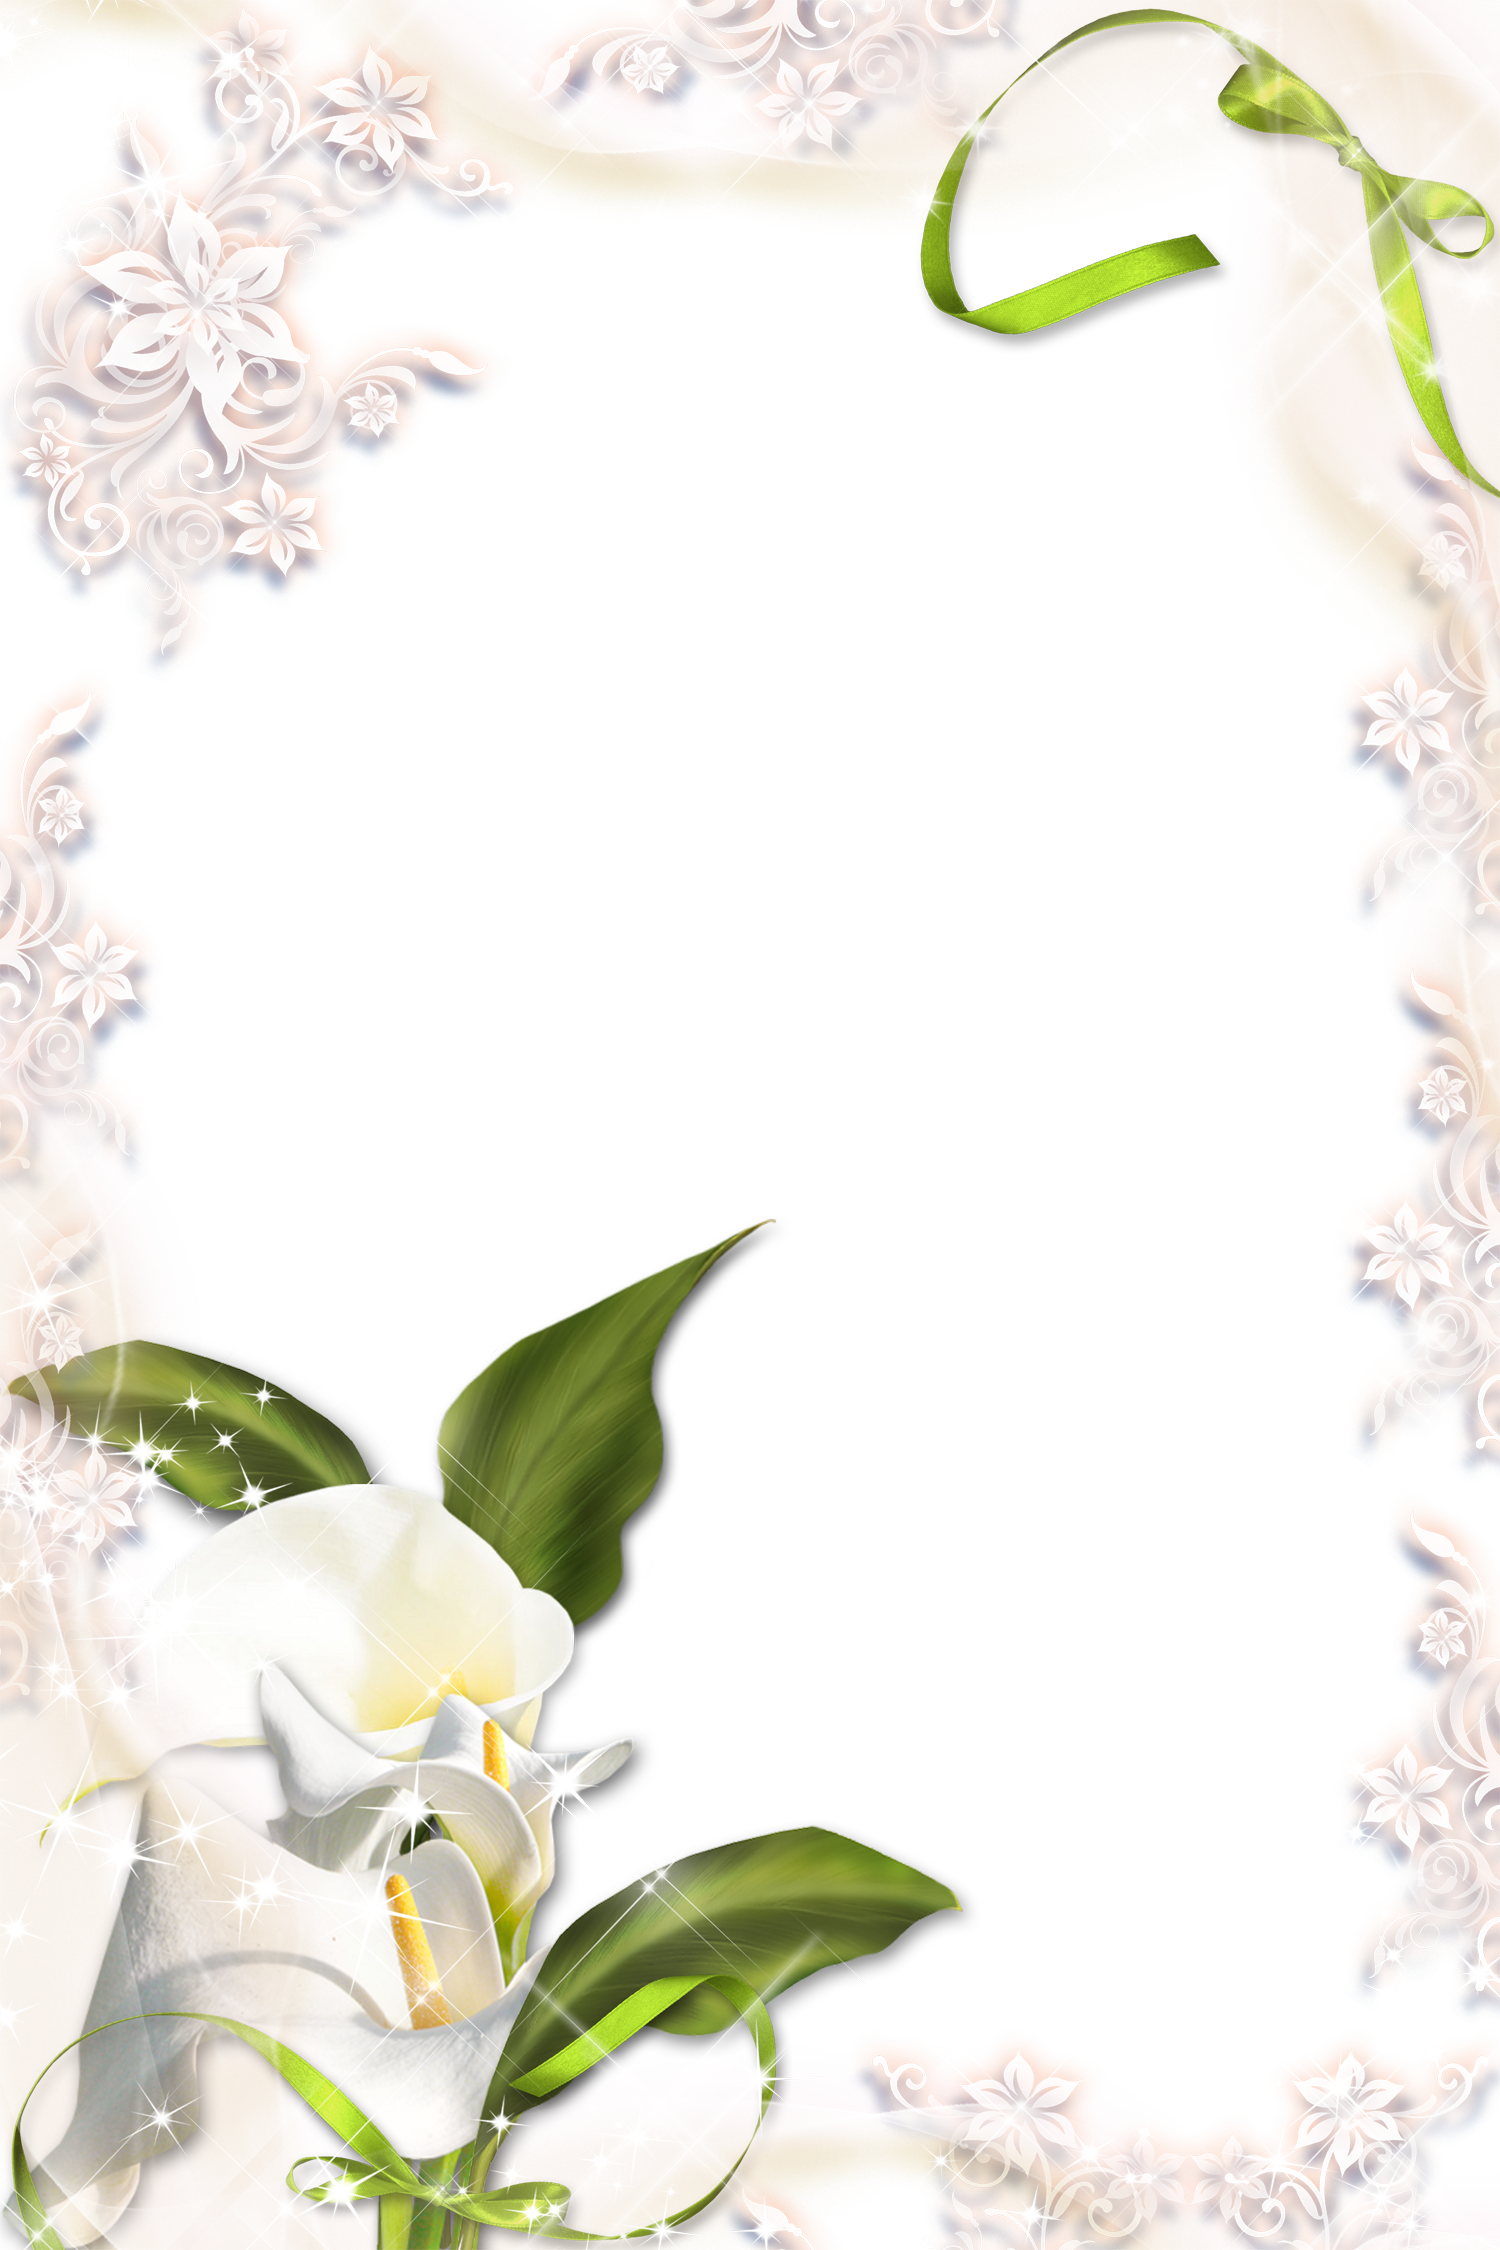 Pin By Yvonne Jeanson On Clipart Borders Png Photo Calla Lily Frame